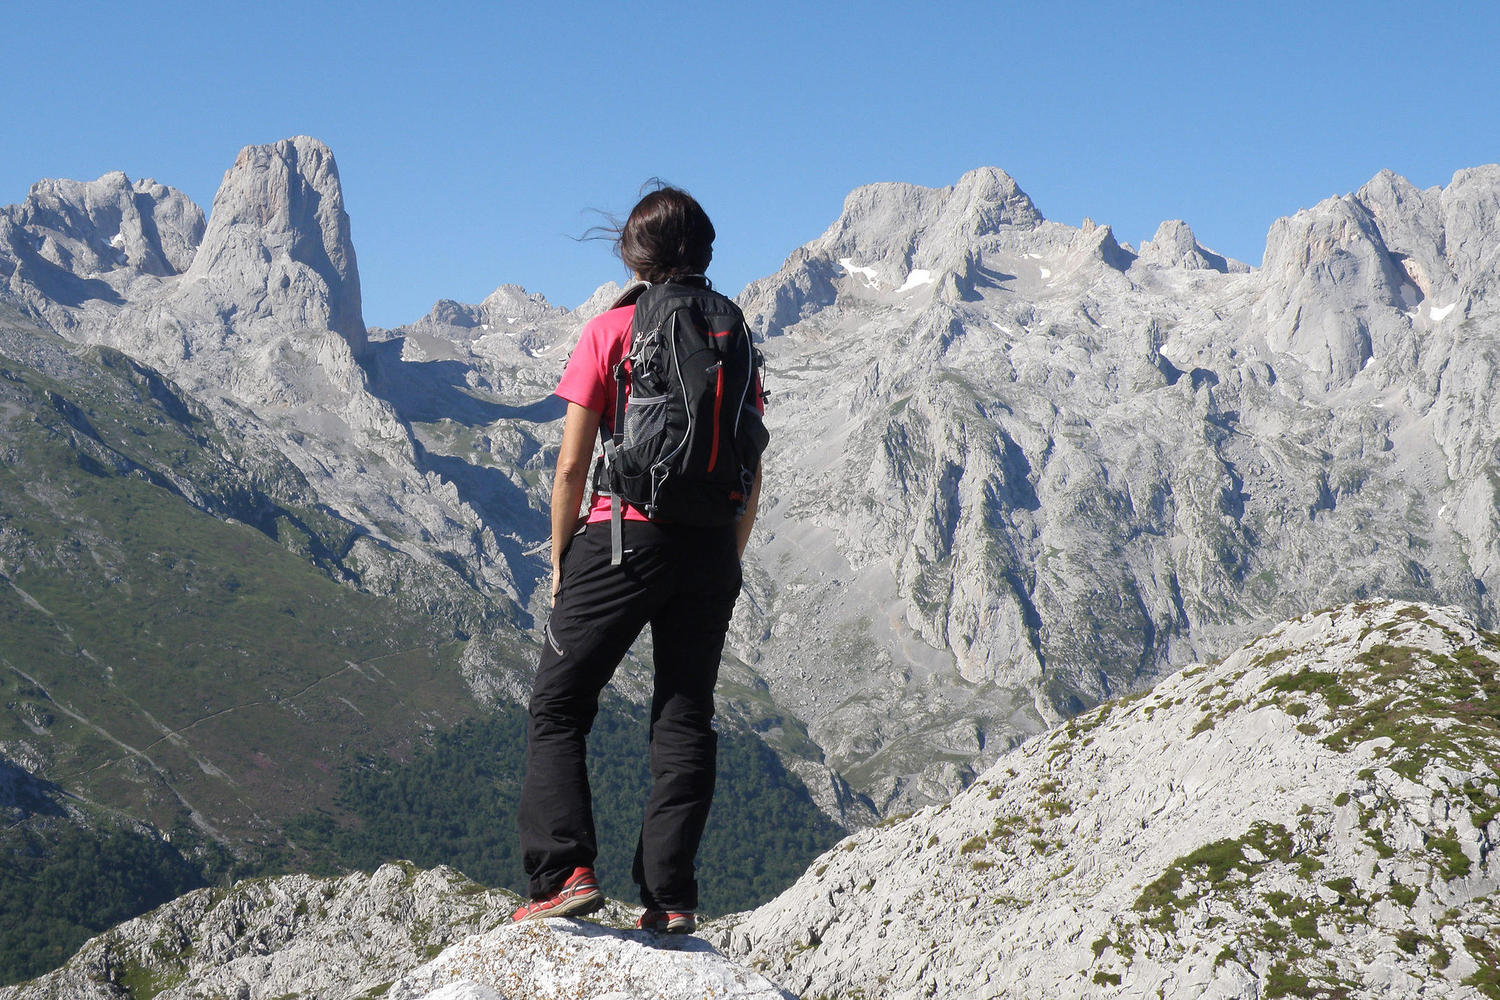 Accesible look out with great views over the Naranjo de Bulnes